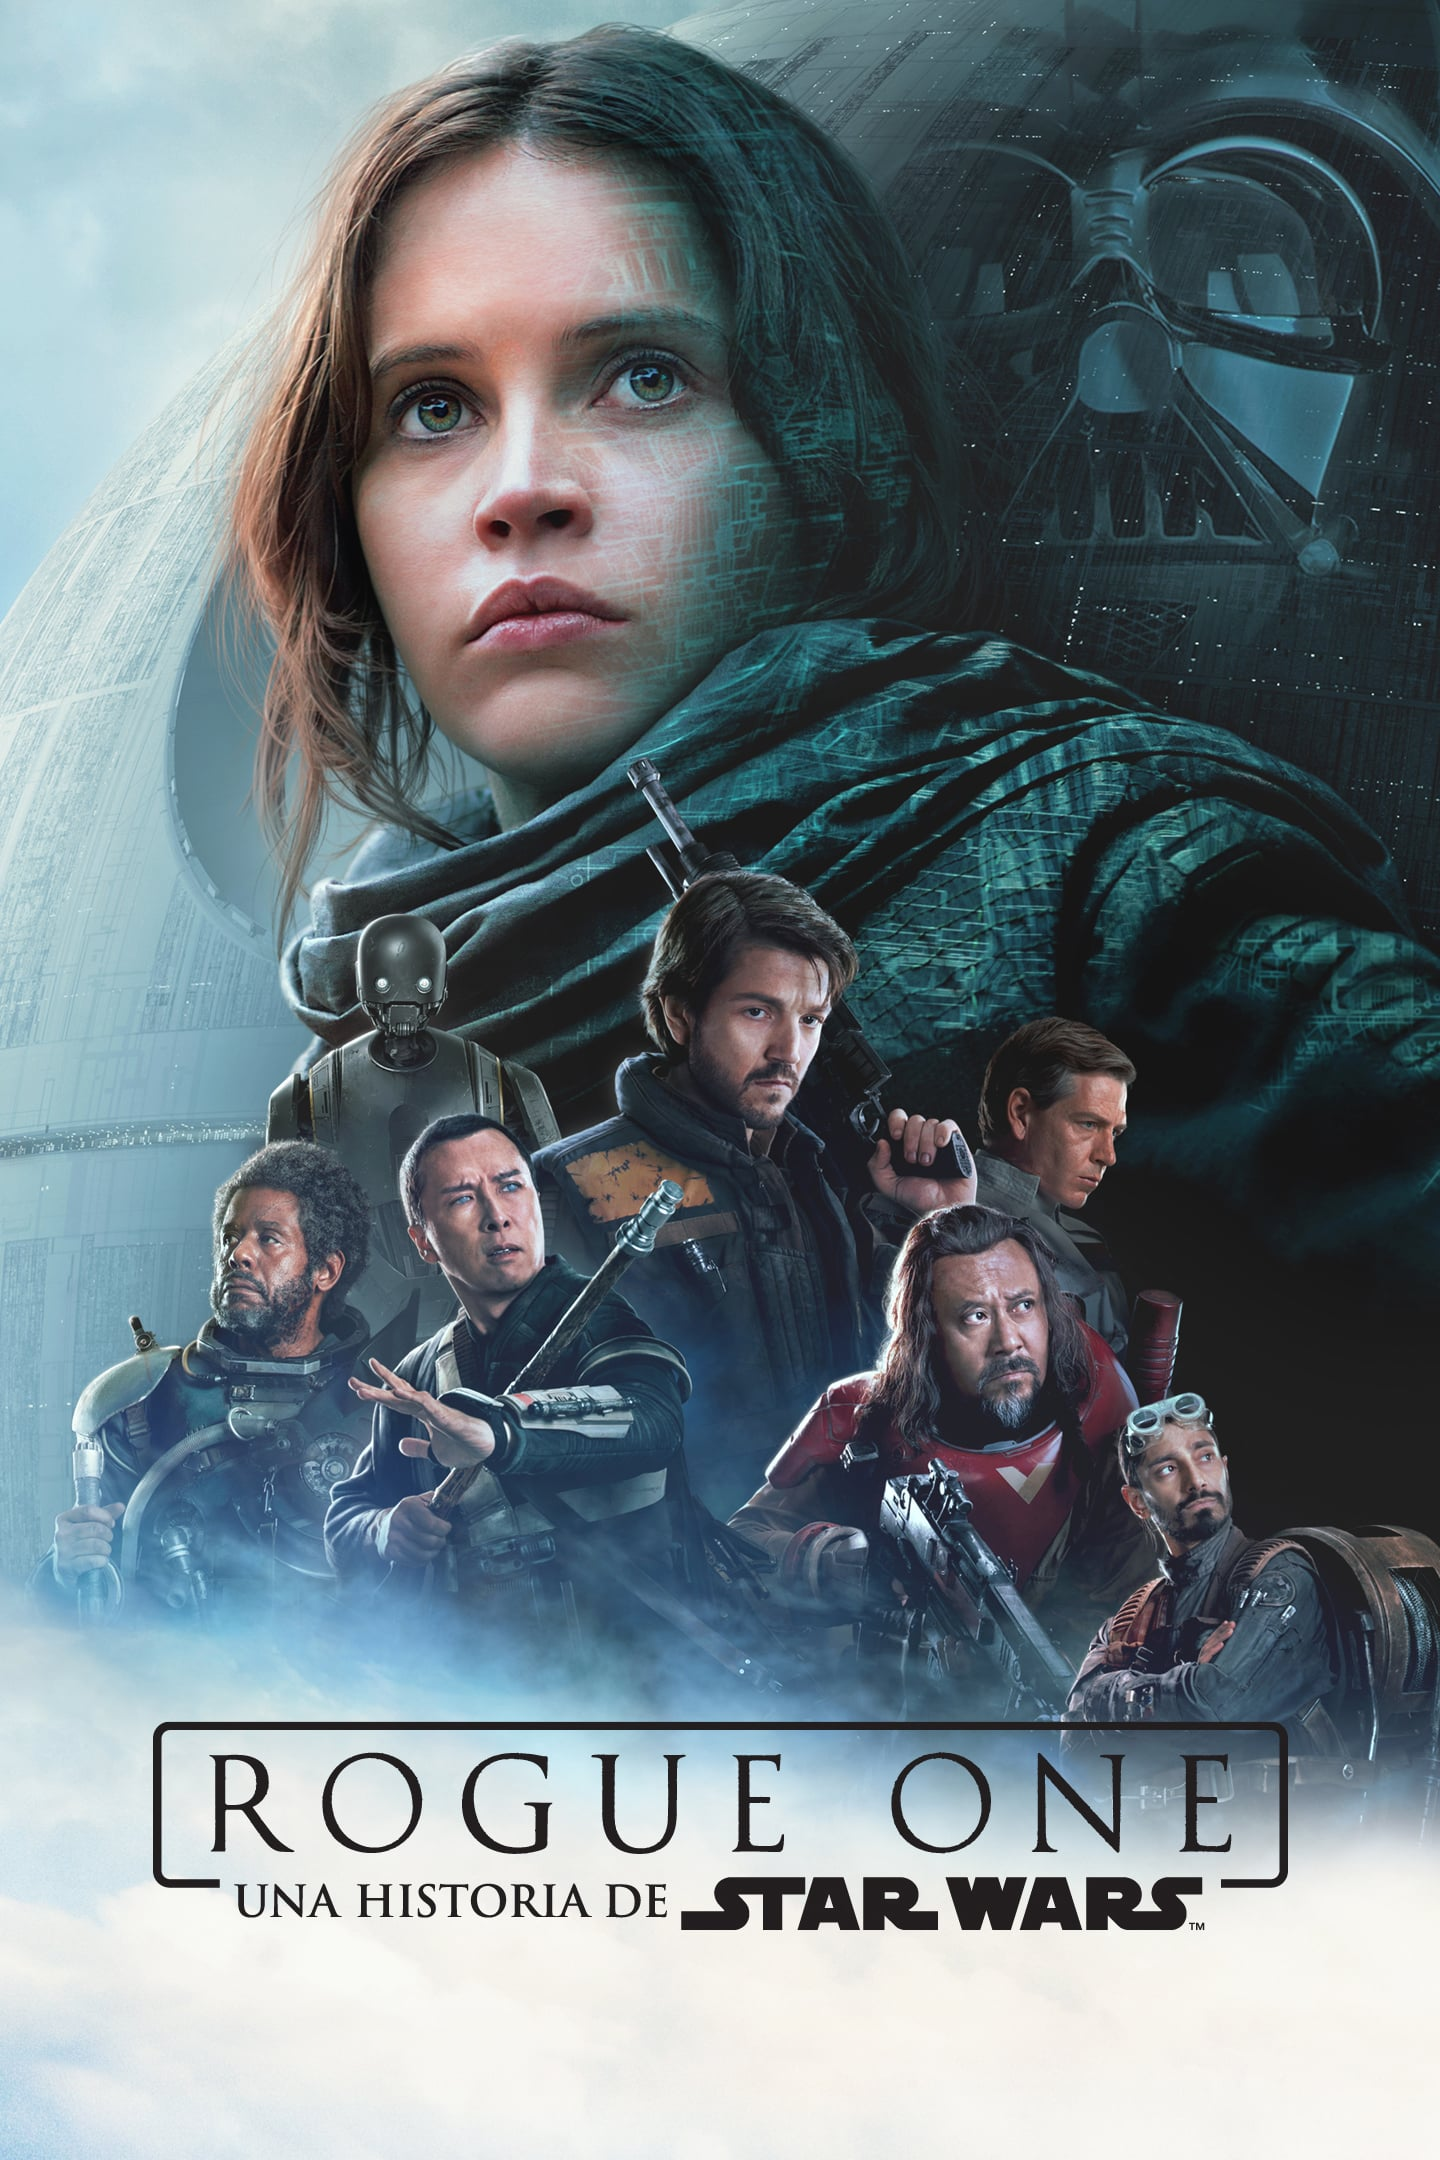 thumb Rogue One: Una historia de Star Wars